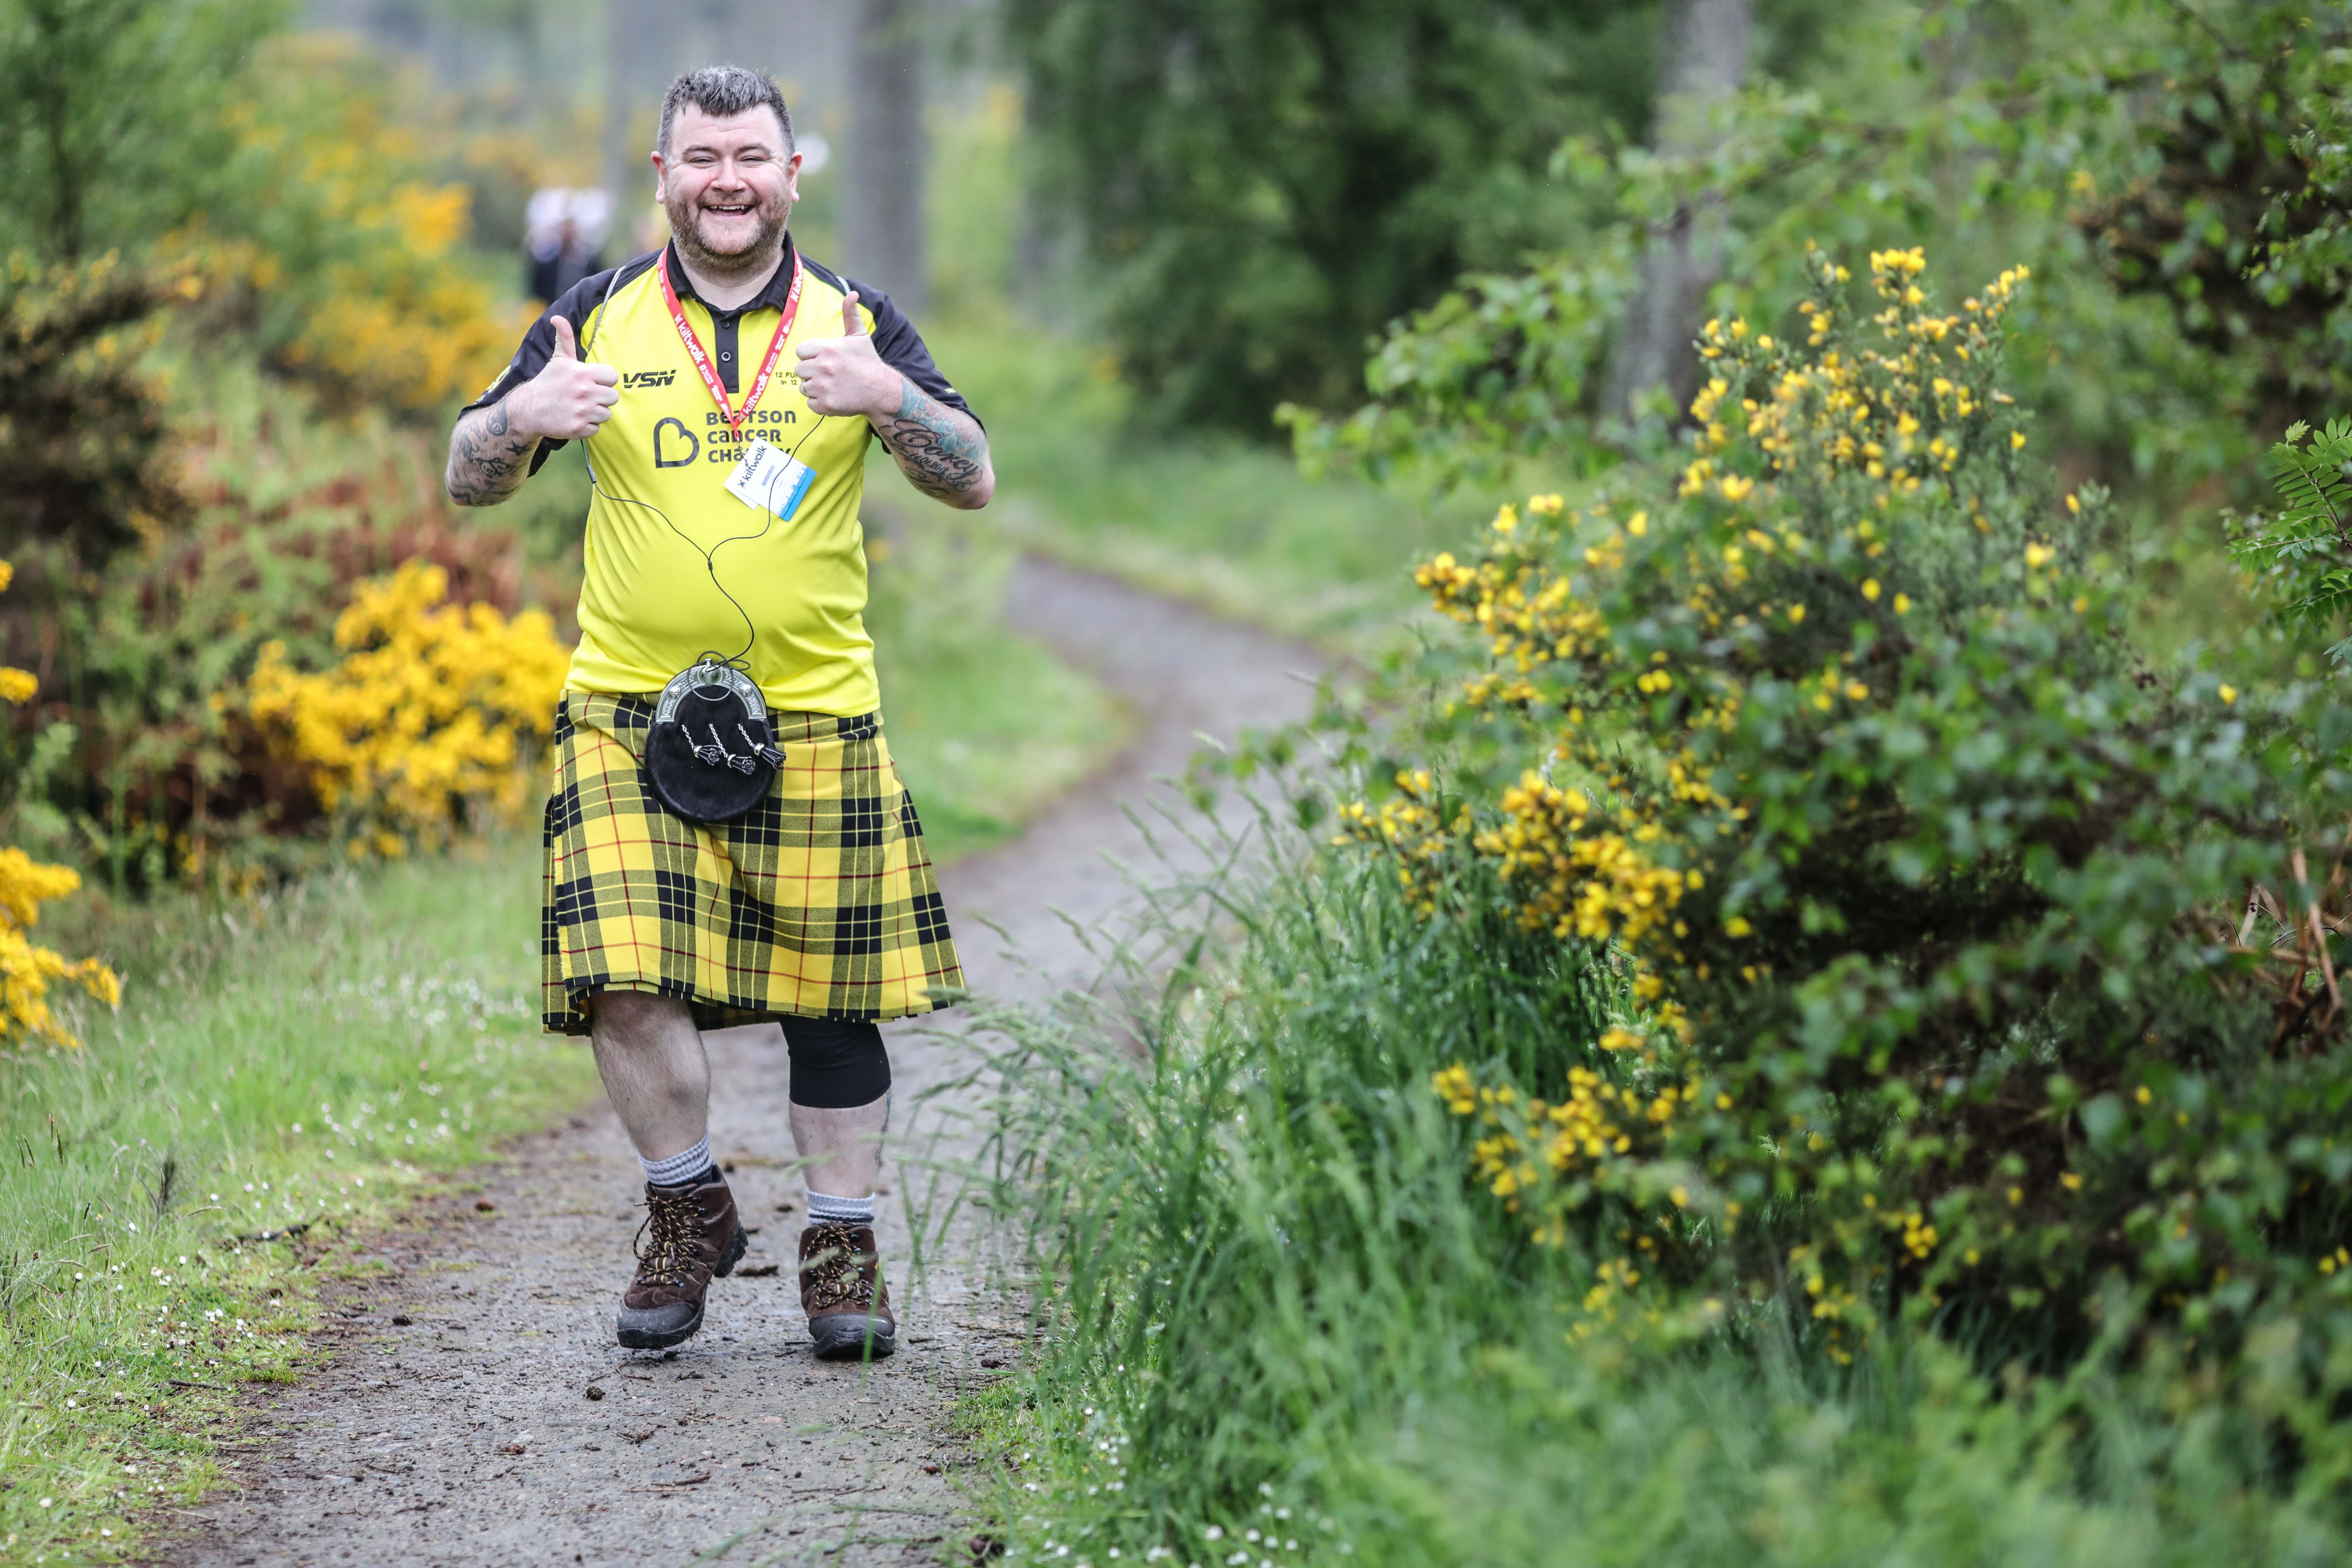 Over 3,000 walkers raising more than £800,000 for Scottish charities.